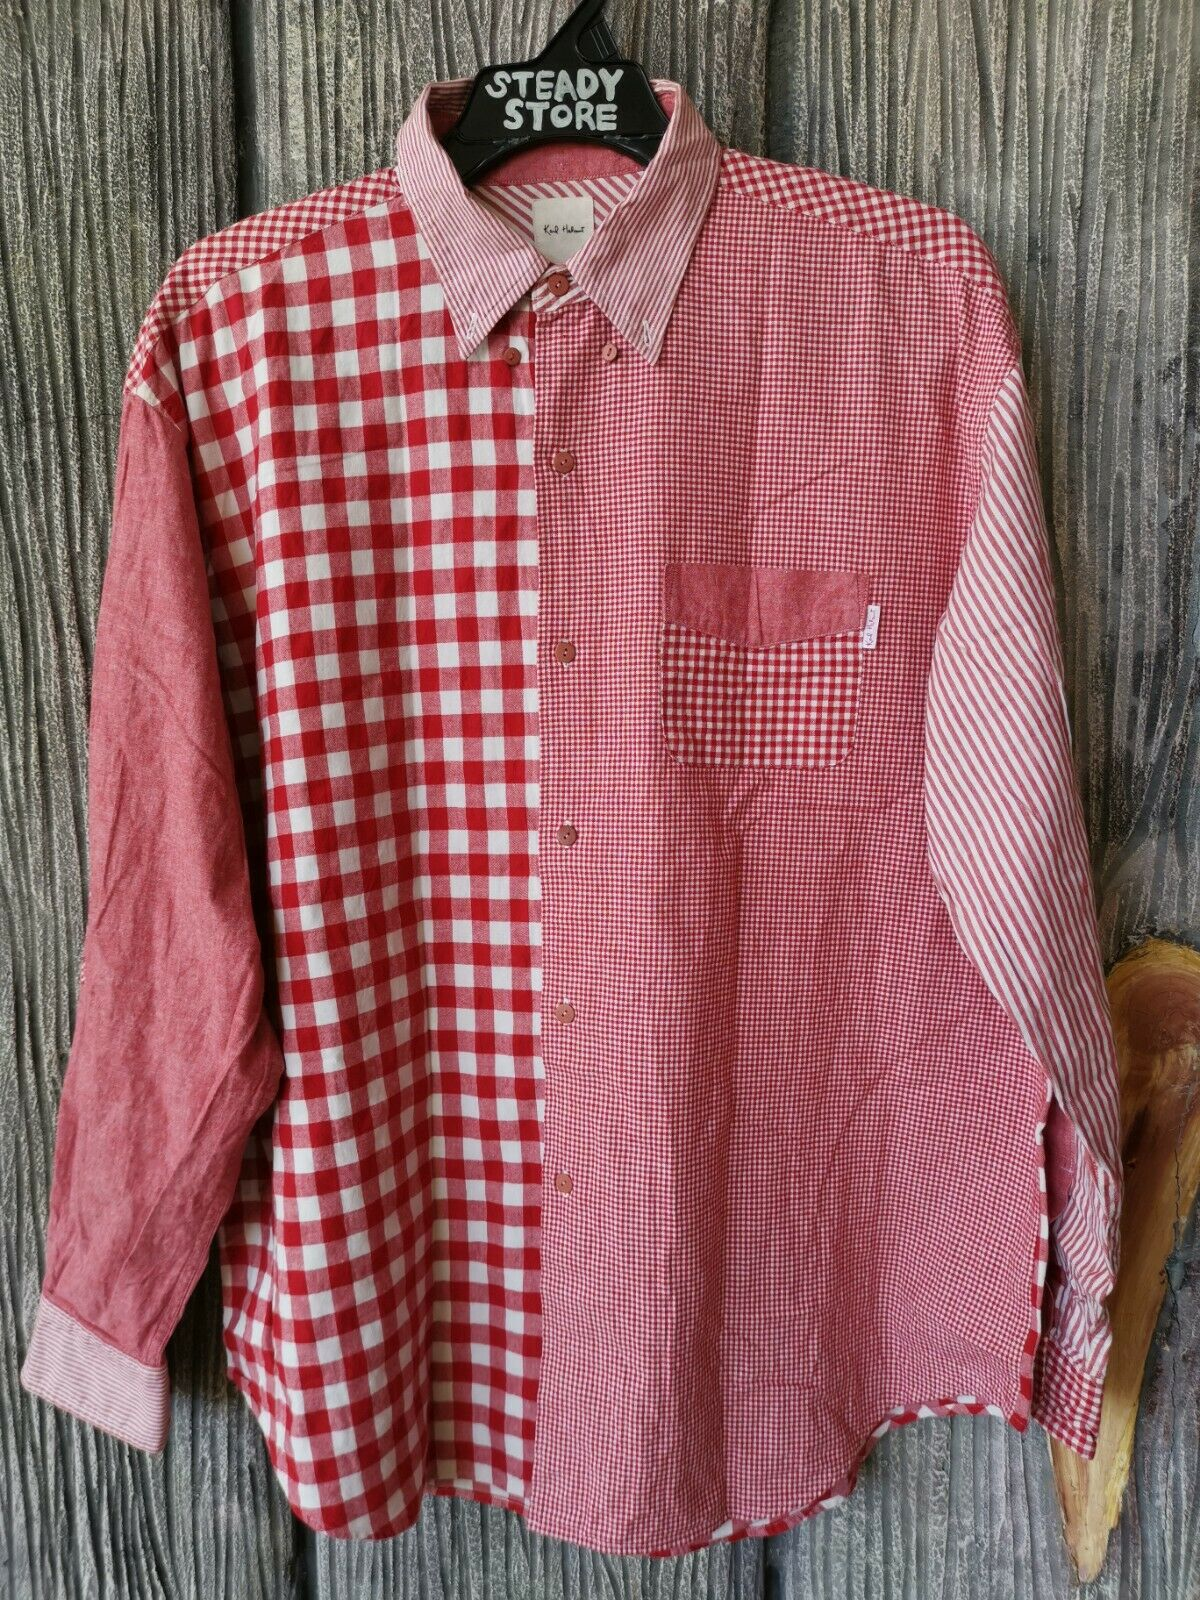 VINTAGE KARL HELMUT PINK HOUSE JAPAN CHECKED DESIGNER BUTTON SHIRT L